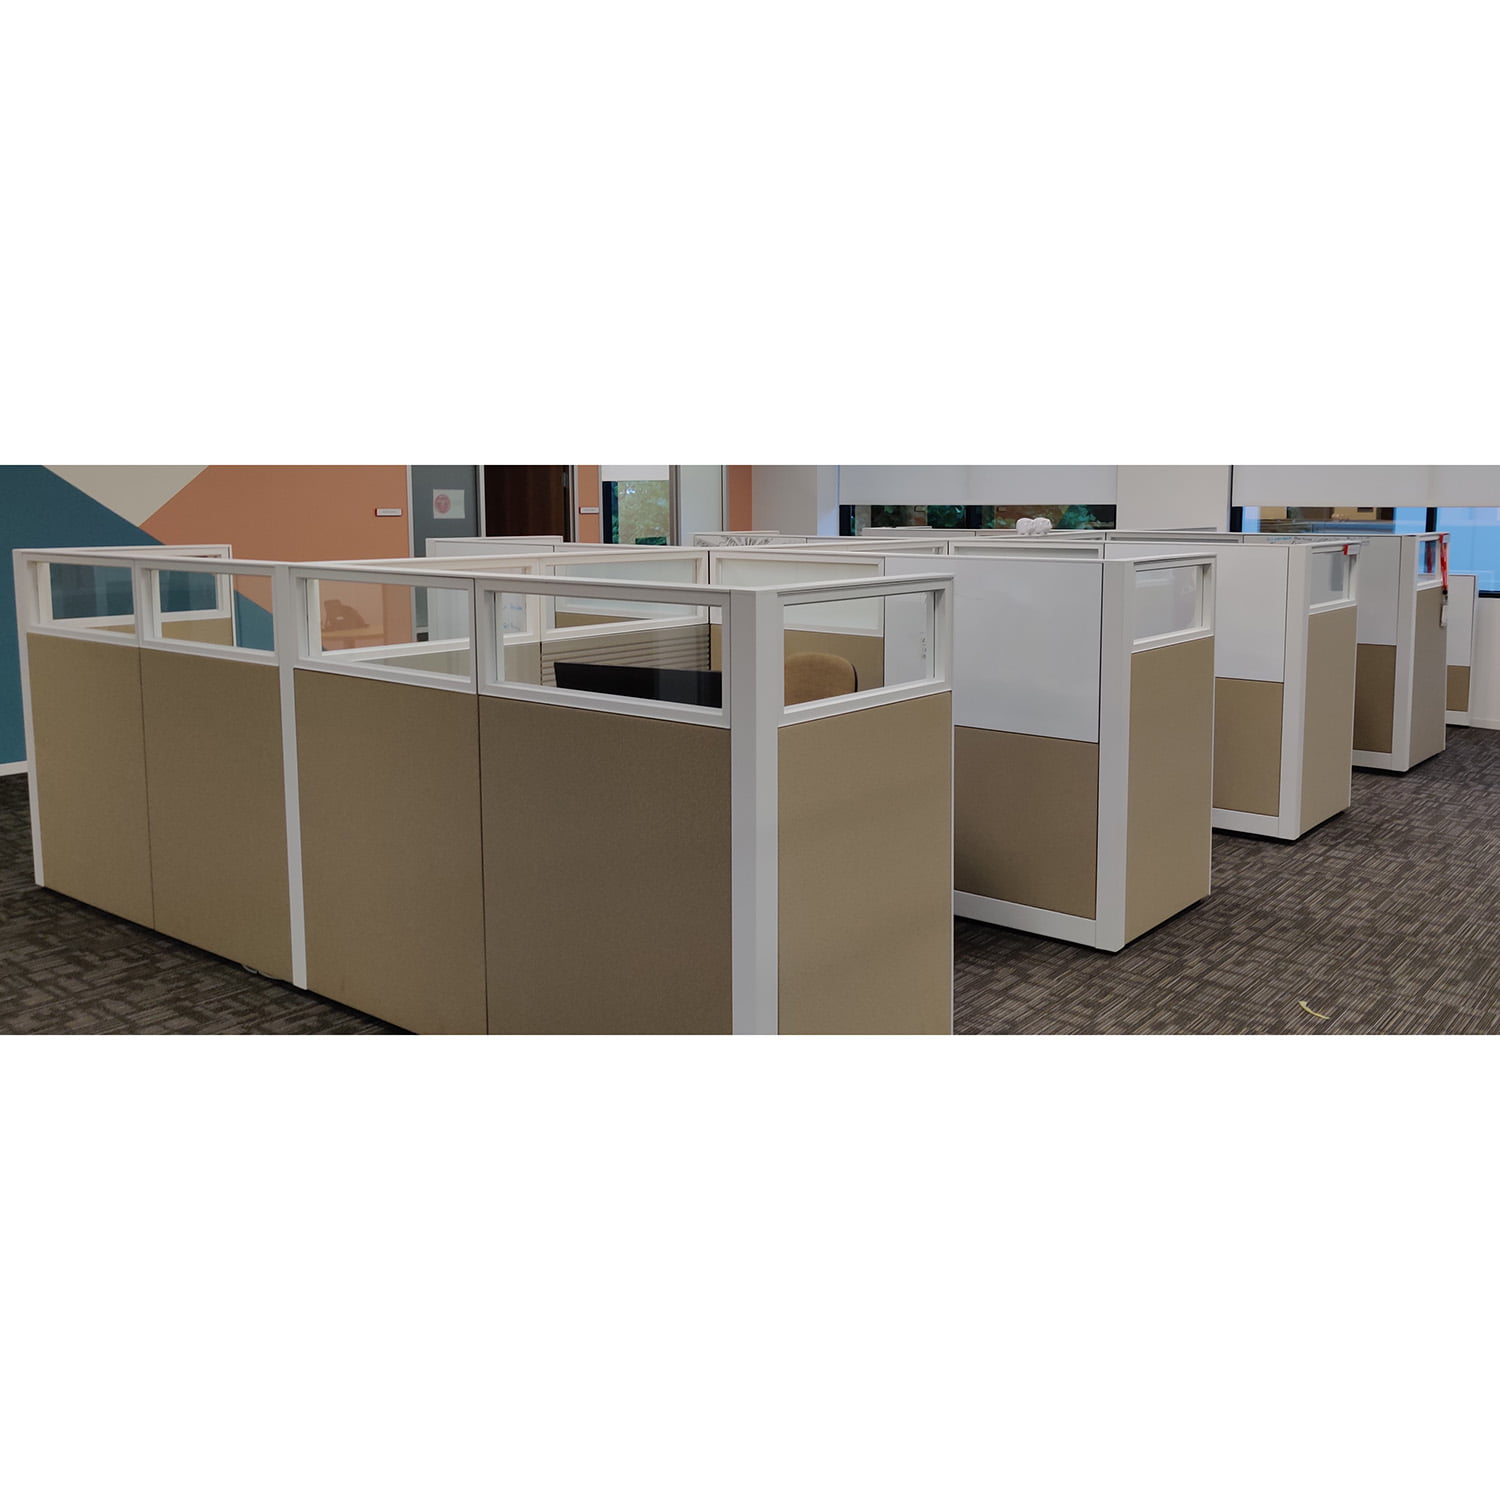 Steelcase Answer Stations